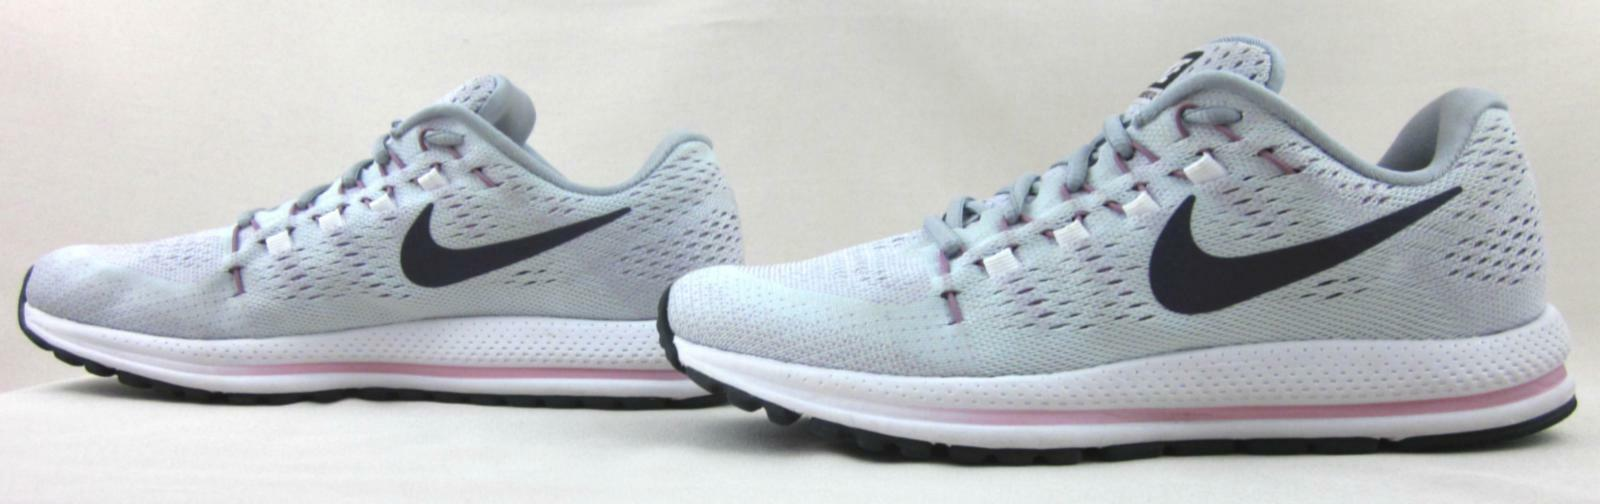 Nike Zoom Vomero 12 Running shoes shoes shoes Light Grey   Pink US 10 Amazing Condition  2752c1